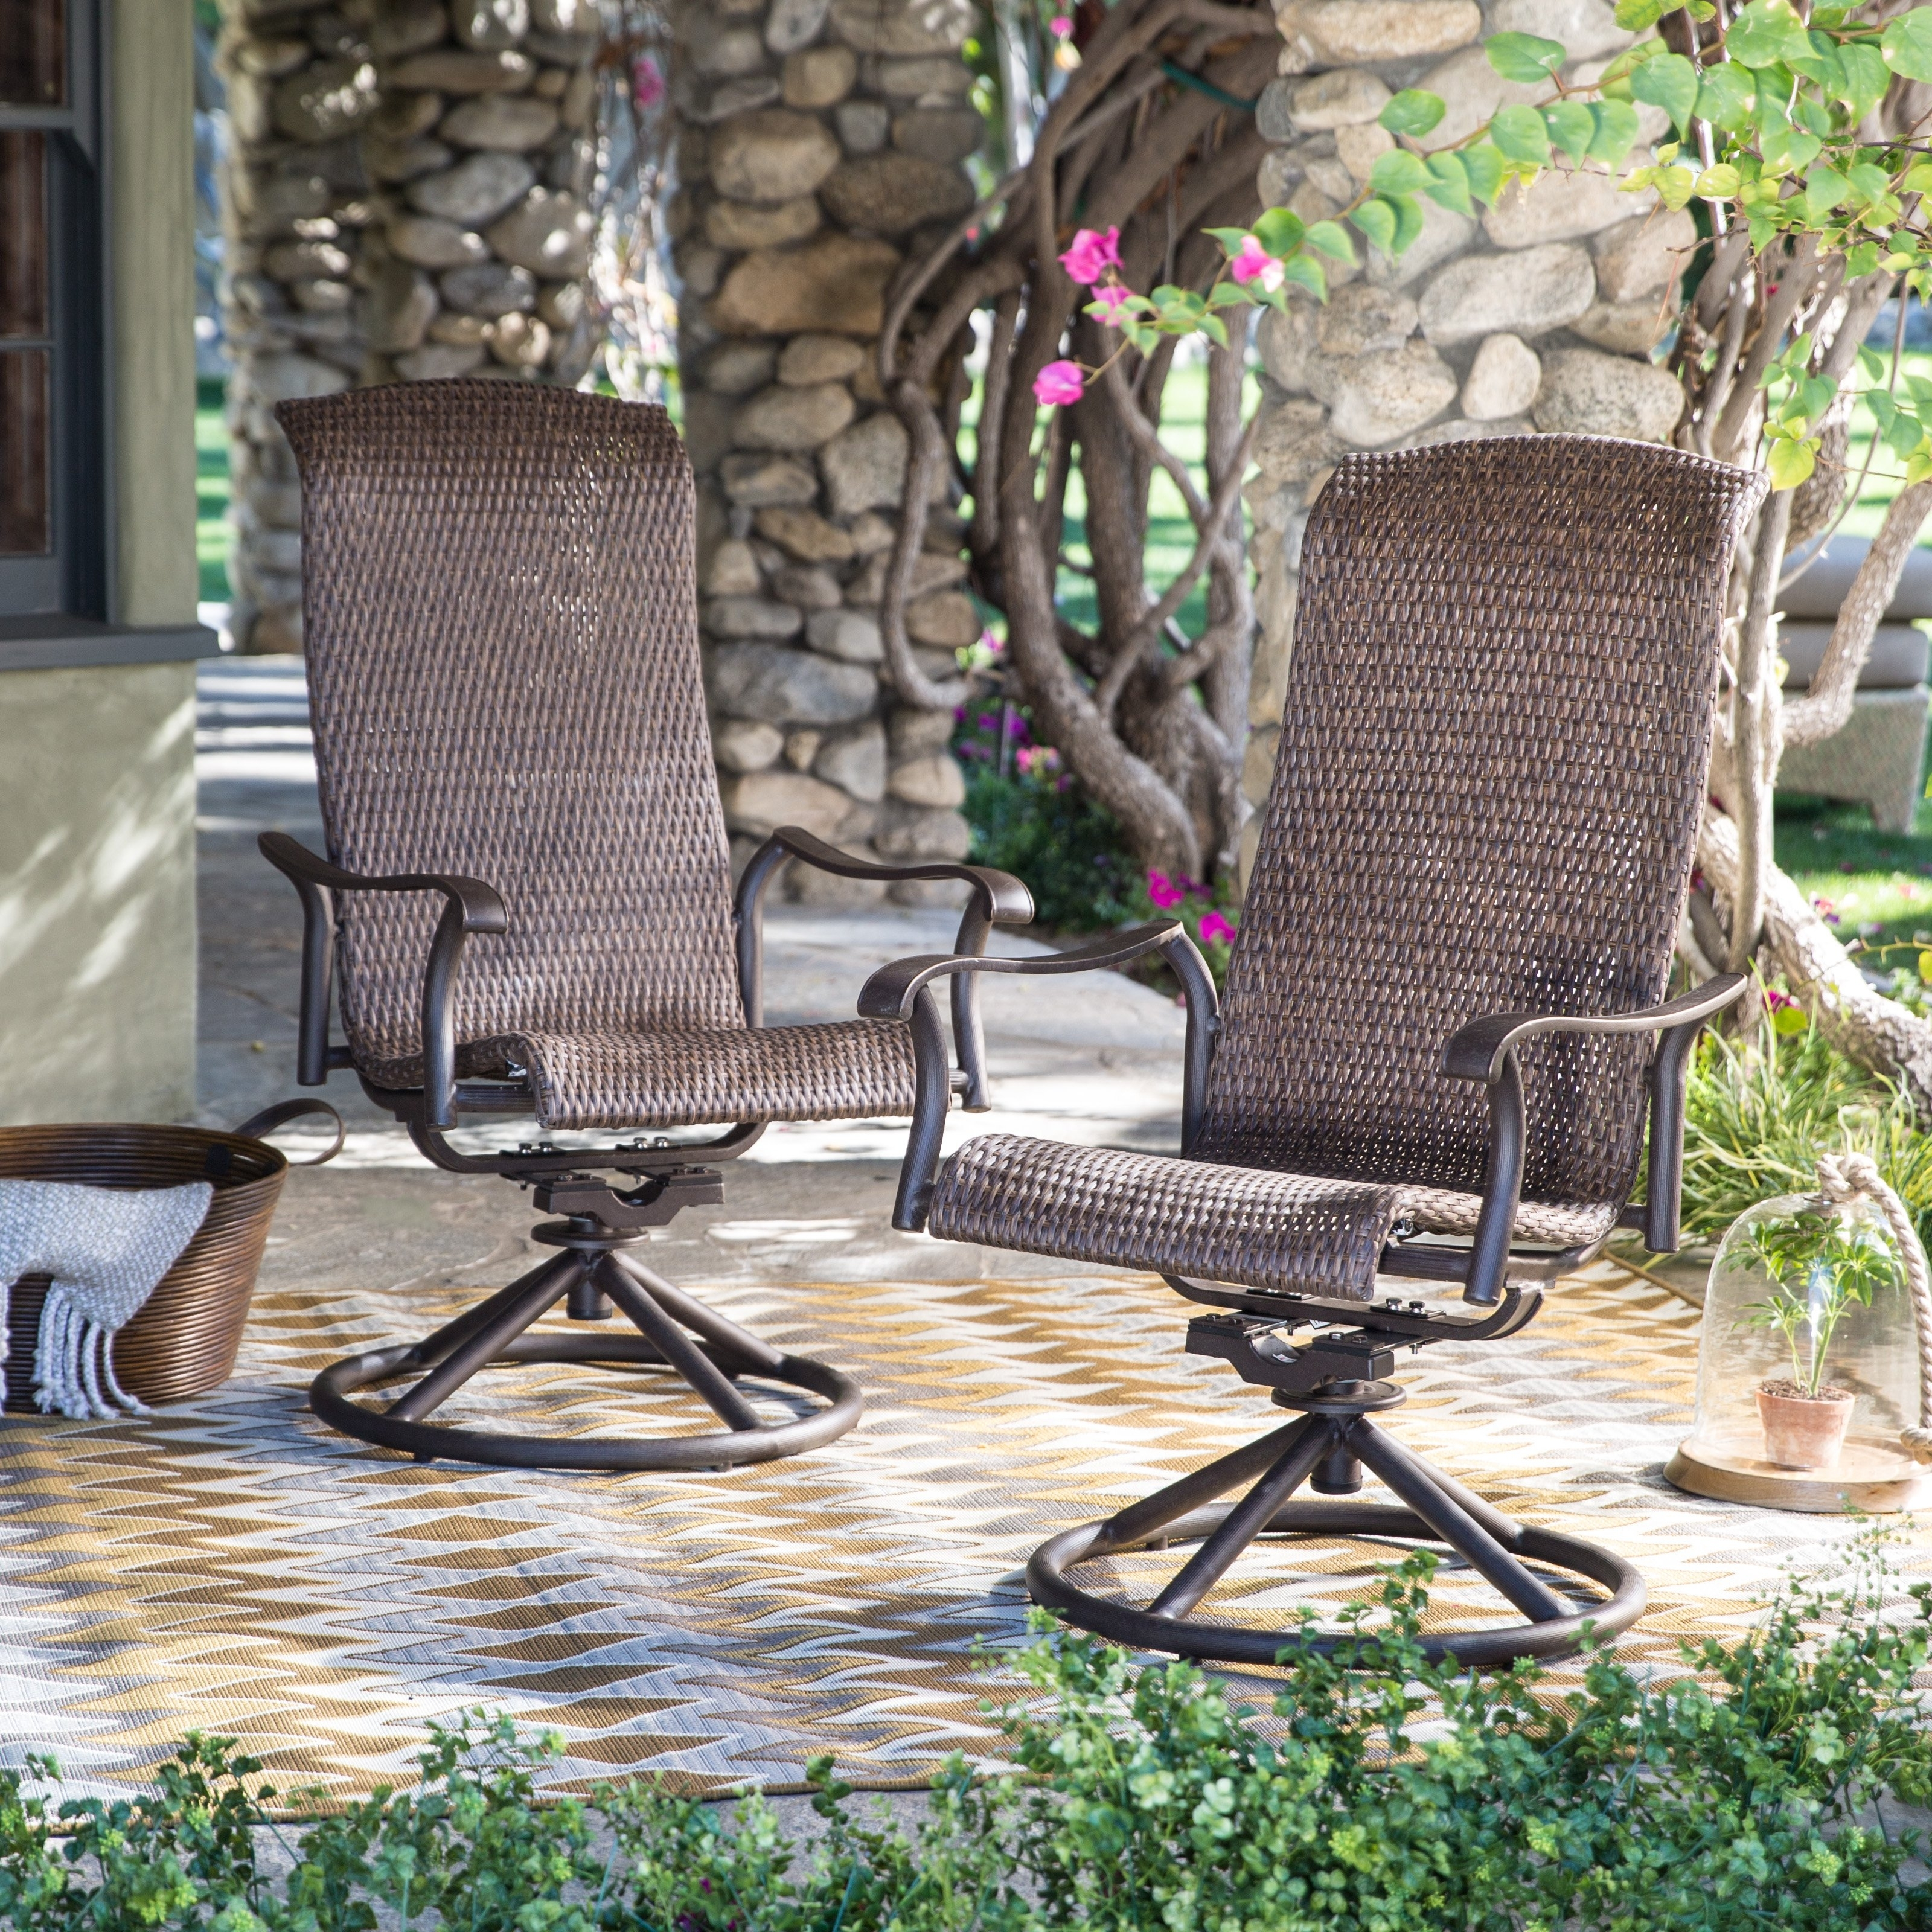 Most Current Outdoor Wicker Swivel Rocking Chair – Outdoor Designs Regarding Patio Rocking Chairs With Ottoman (View 18 of 20)